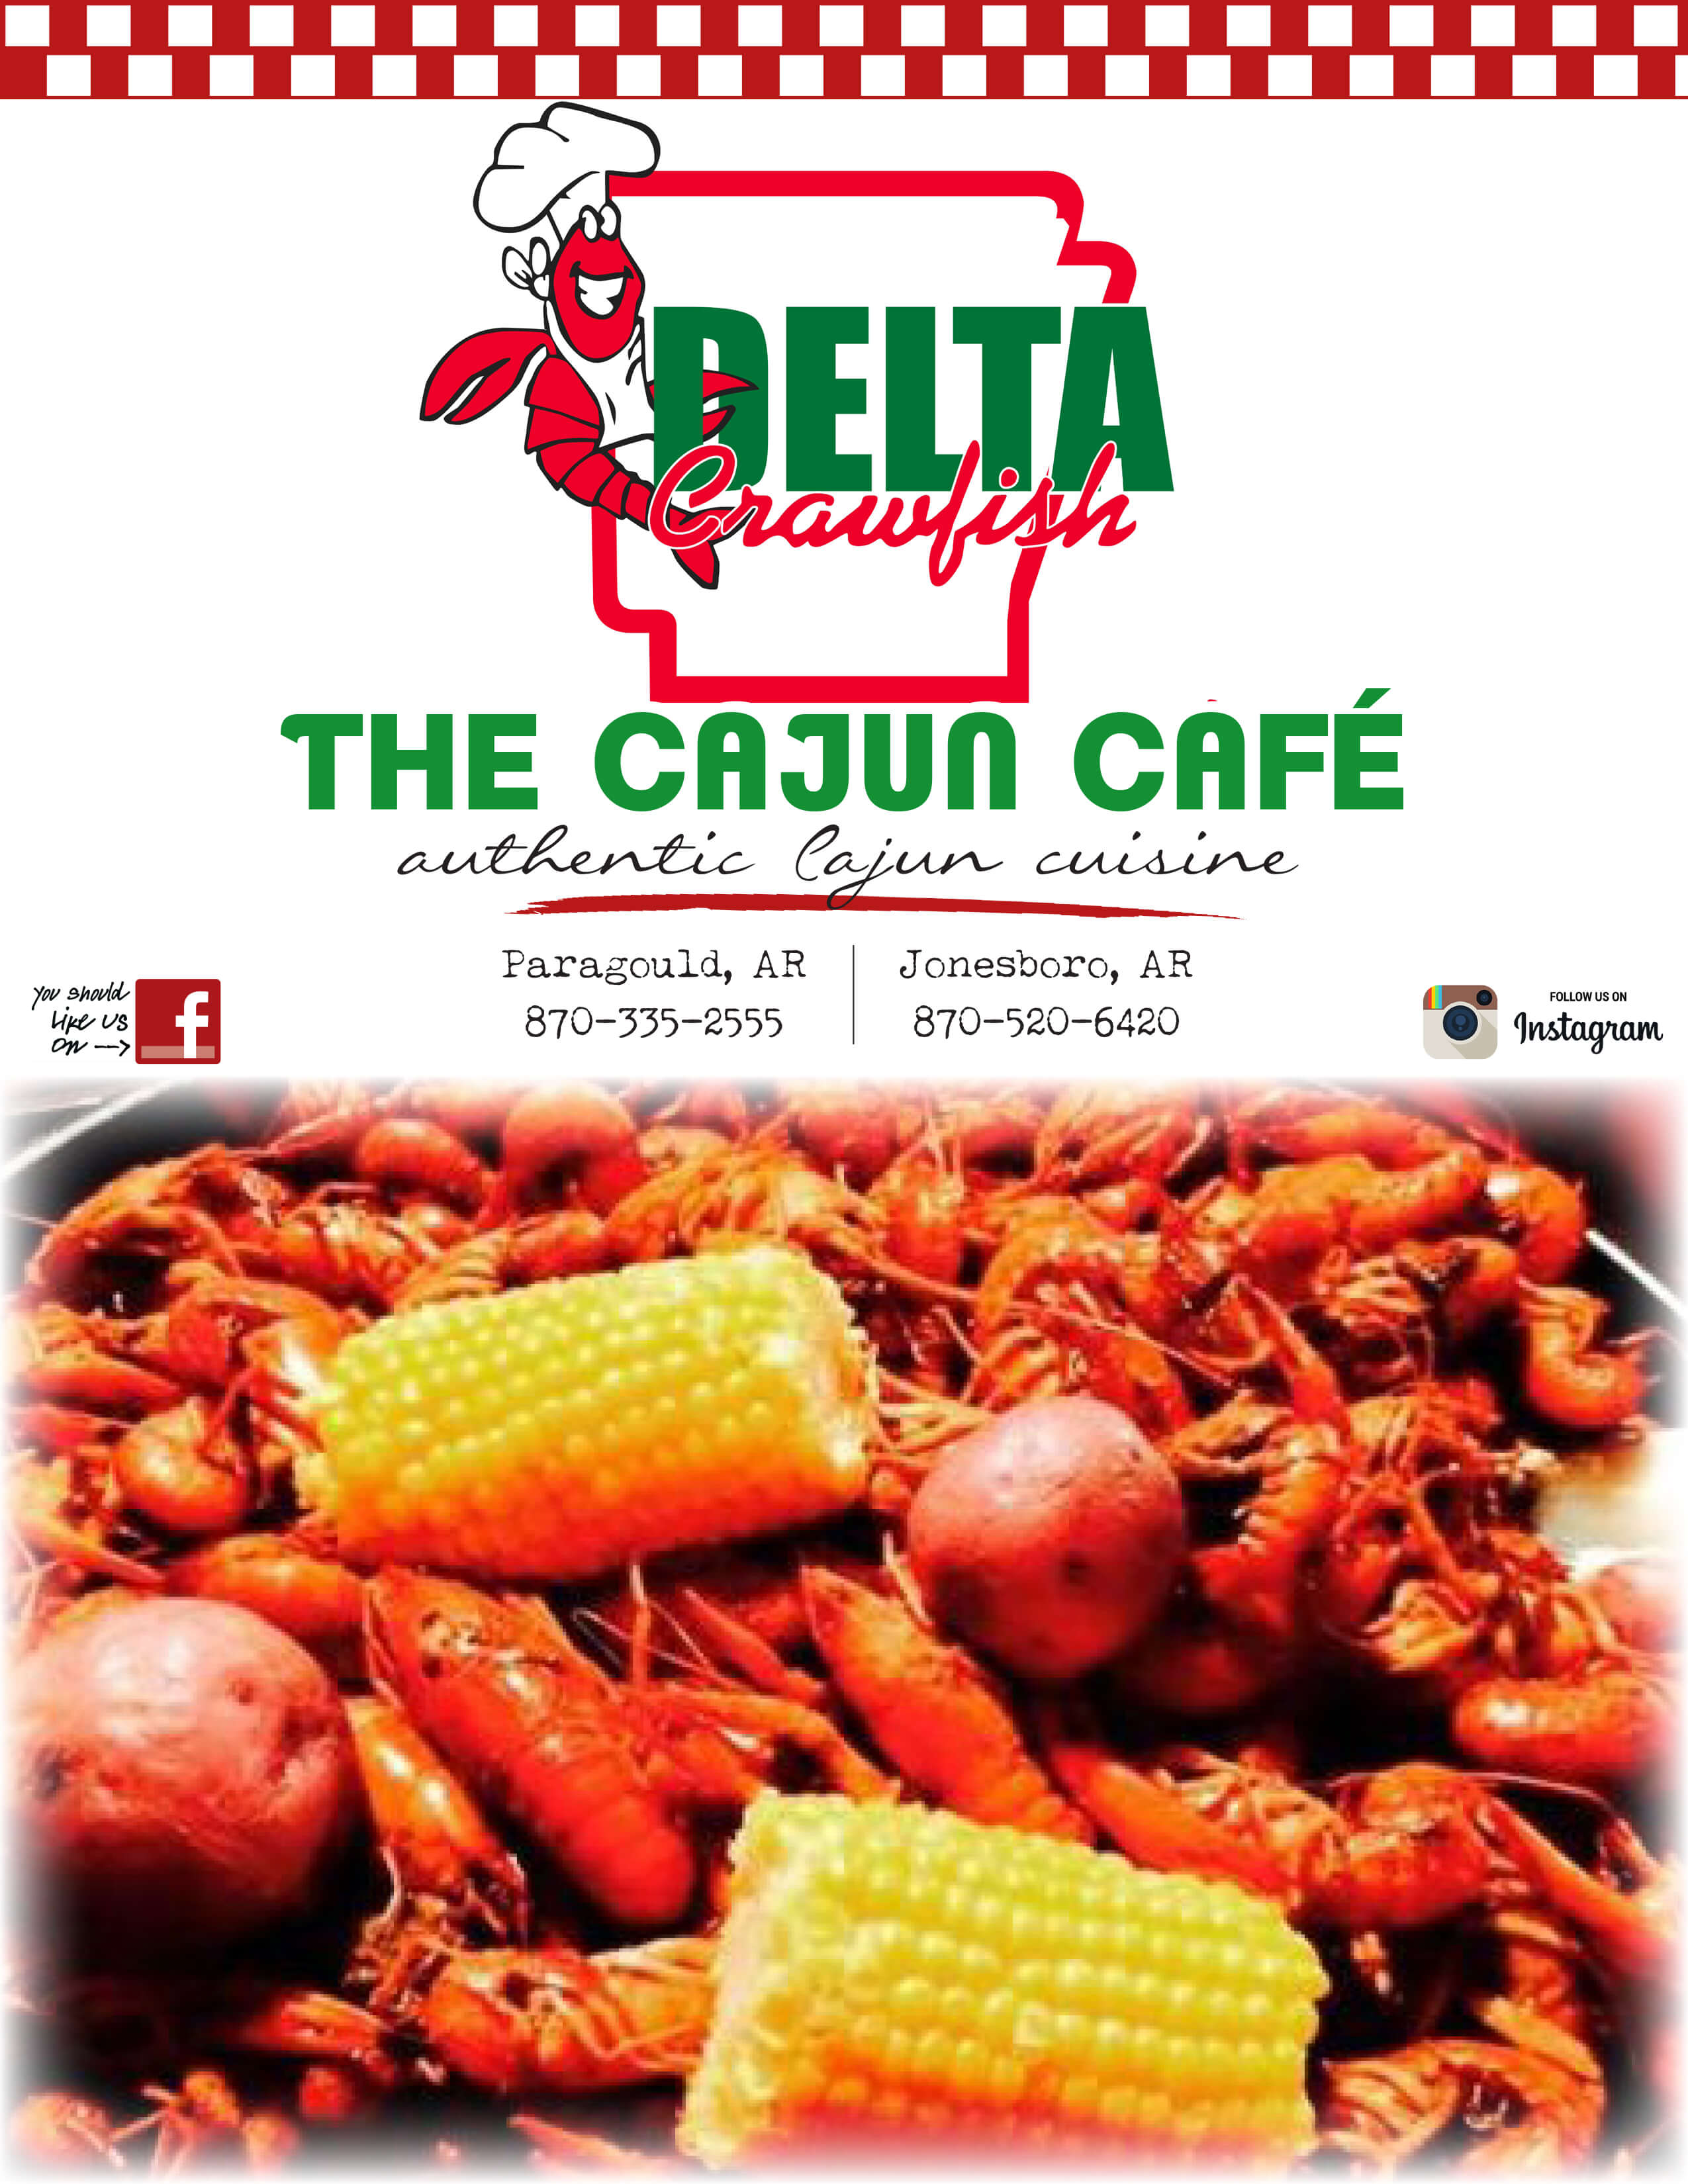 Delta-Crawfish-Cajun-Cafe